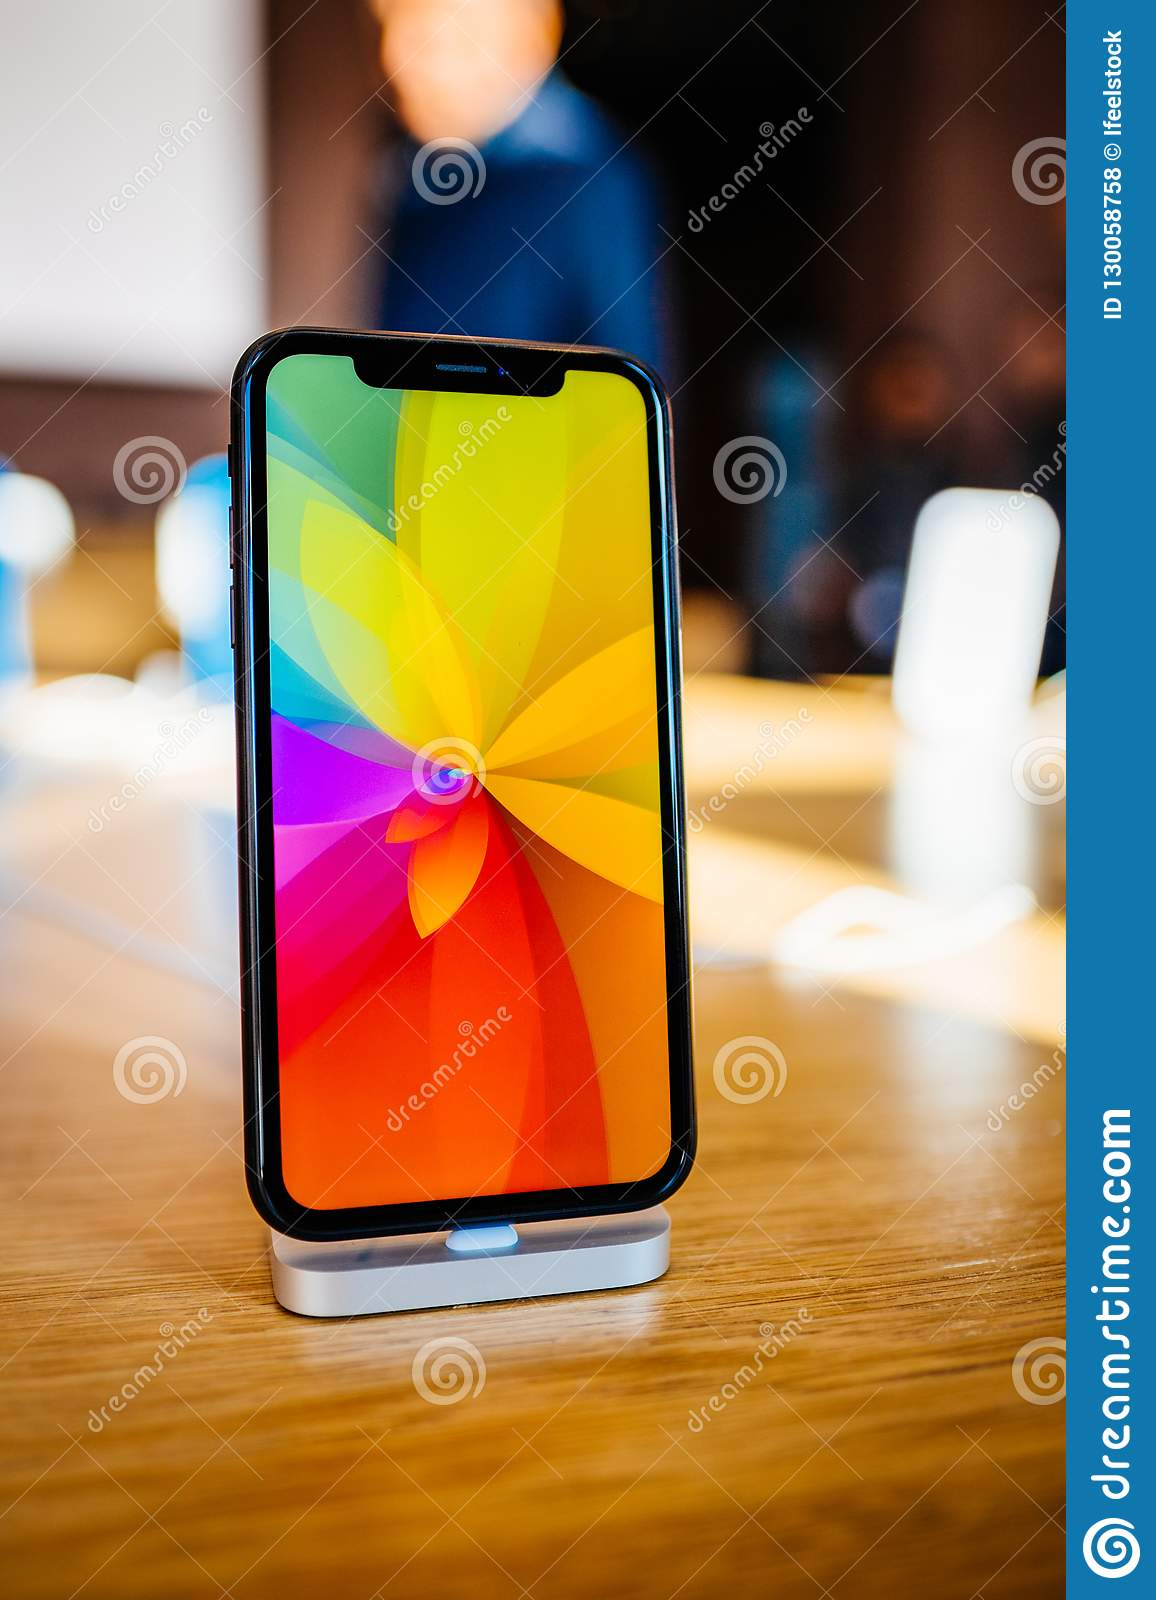 New Iphone Xr Rainbow Screensaver Editorial Stock Photo - Image of